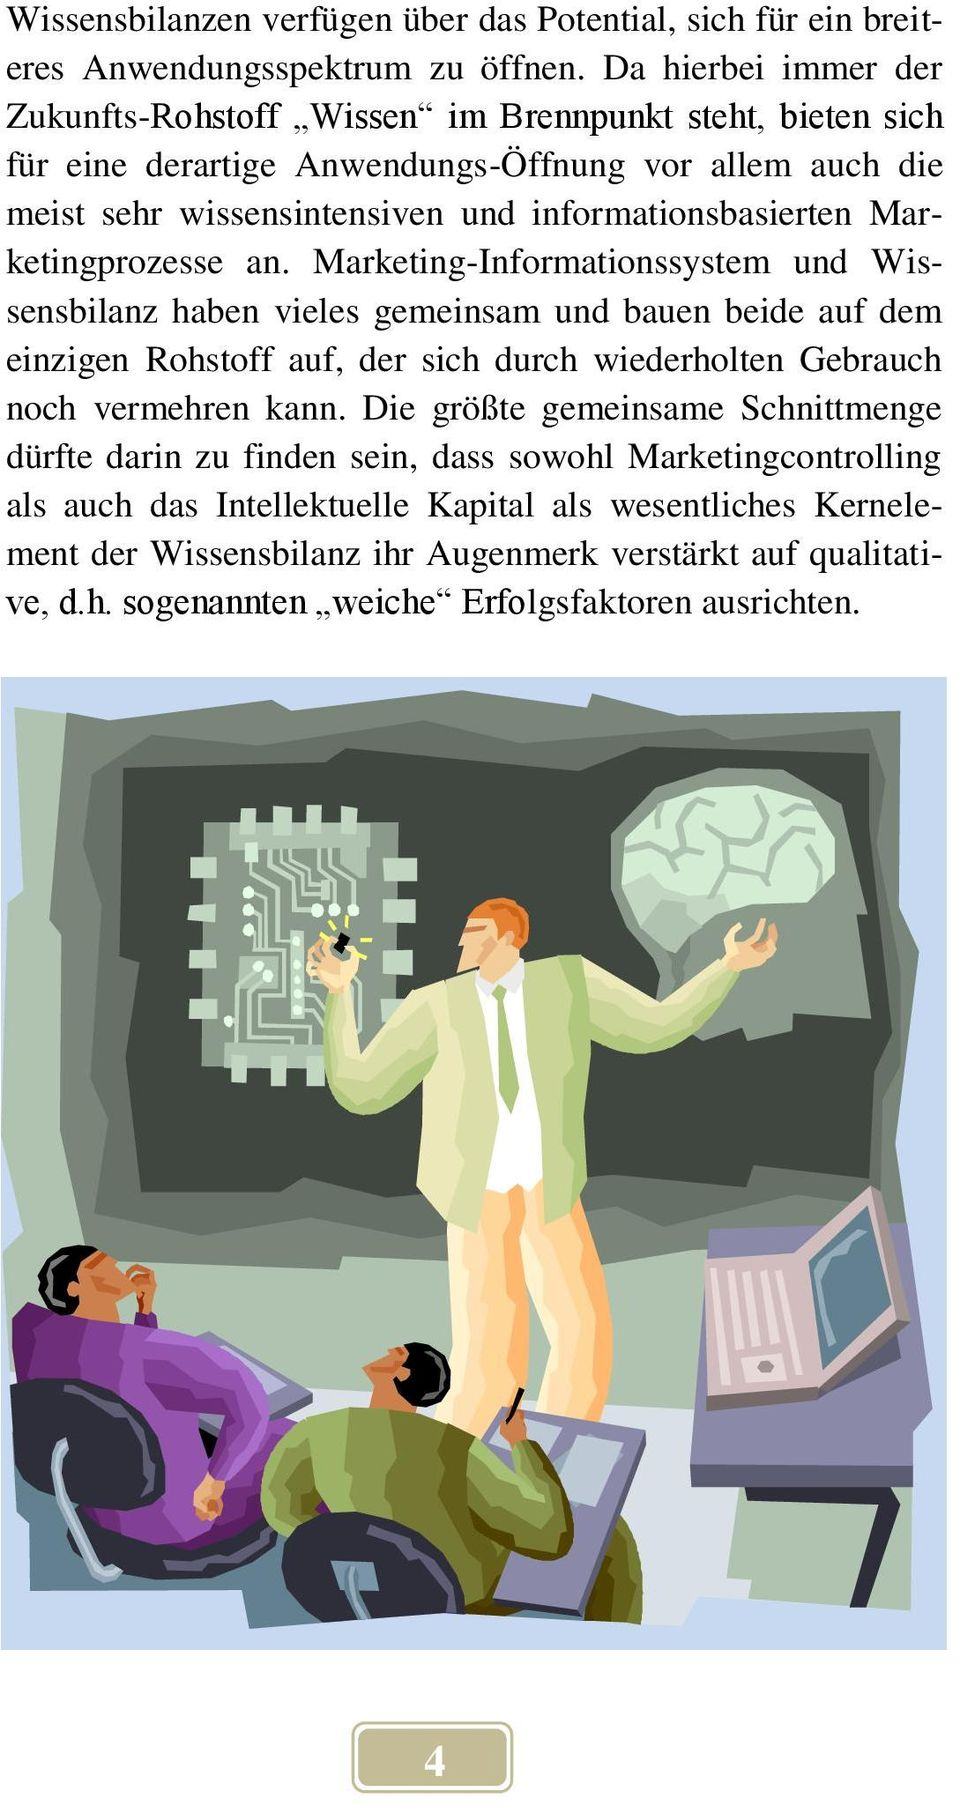 informationsbasierten Marketingprozesse an.